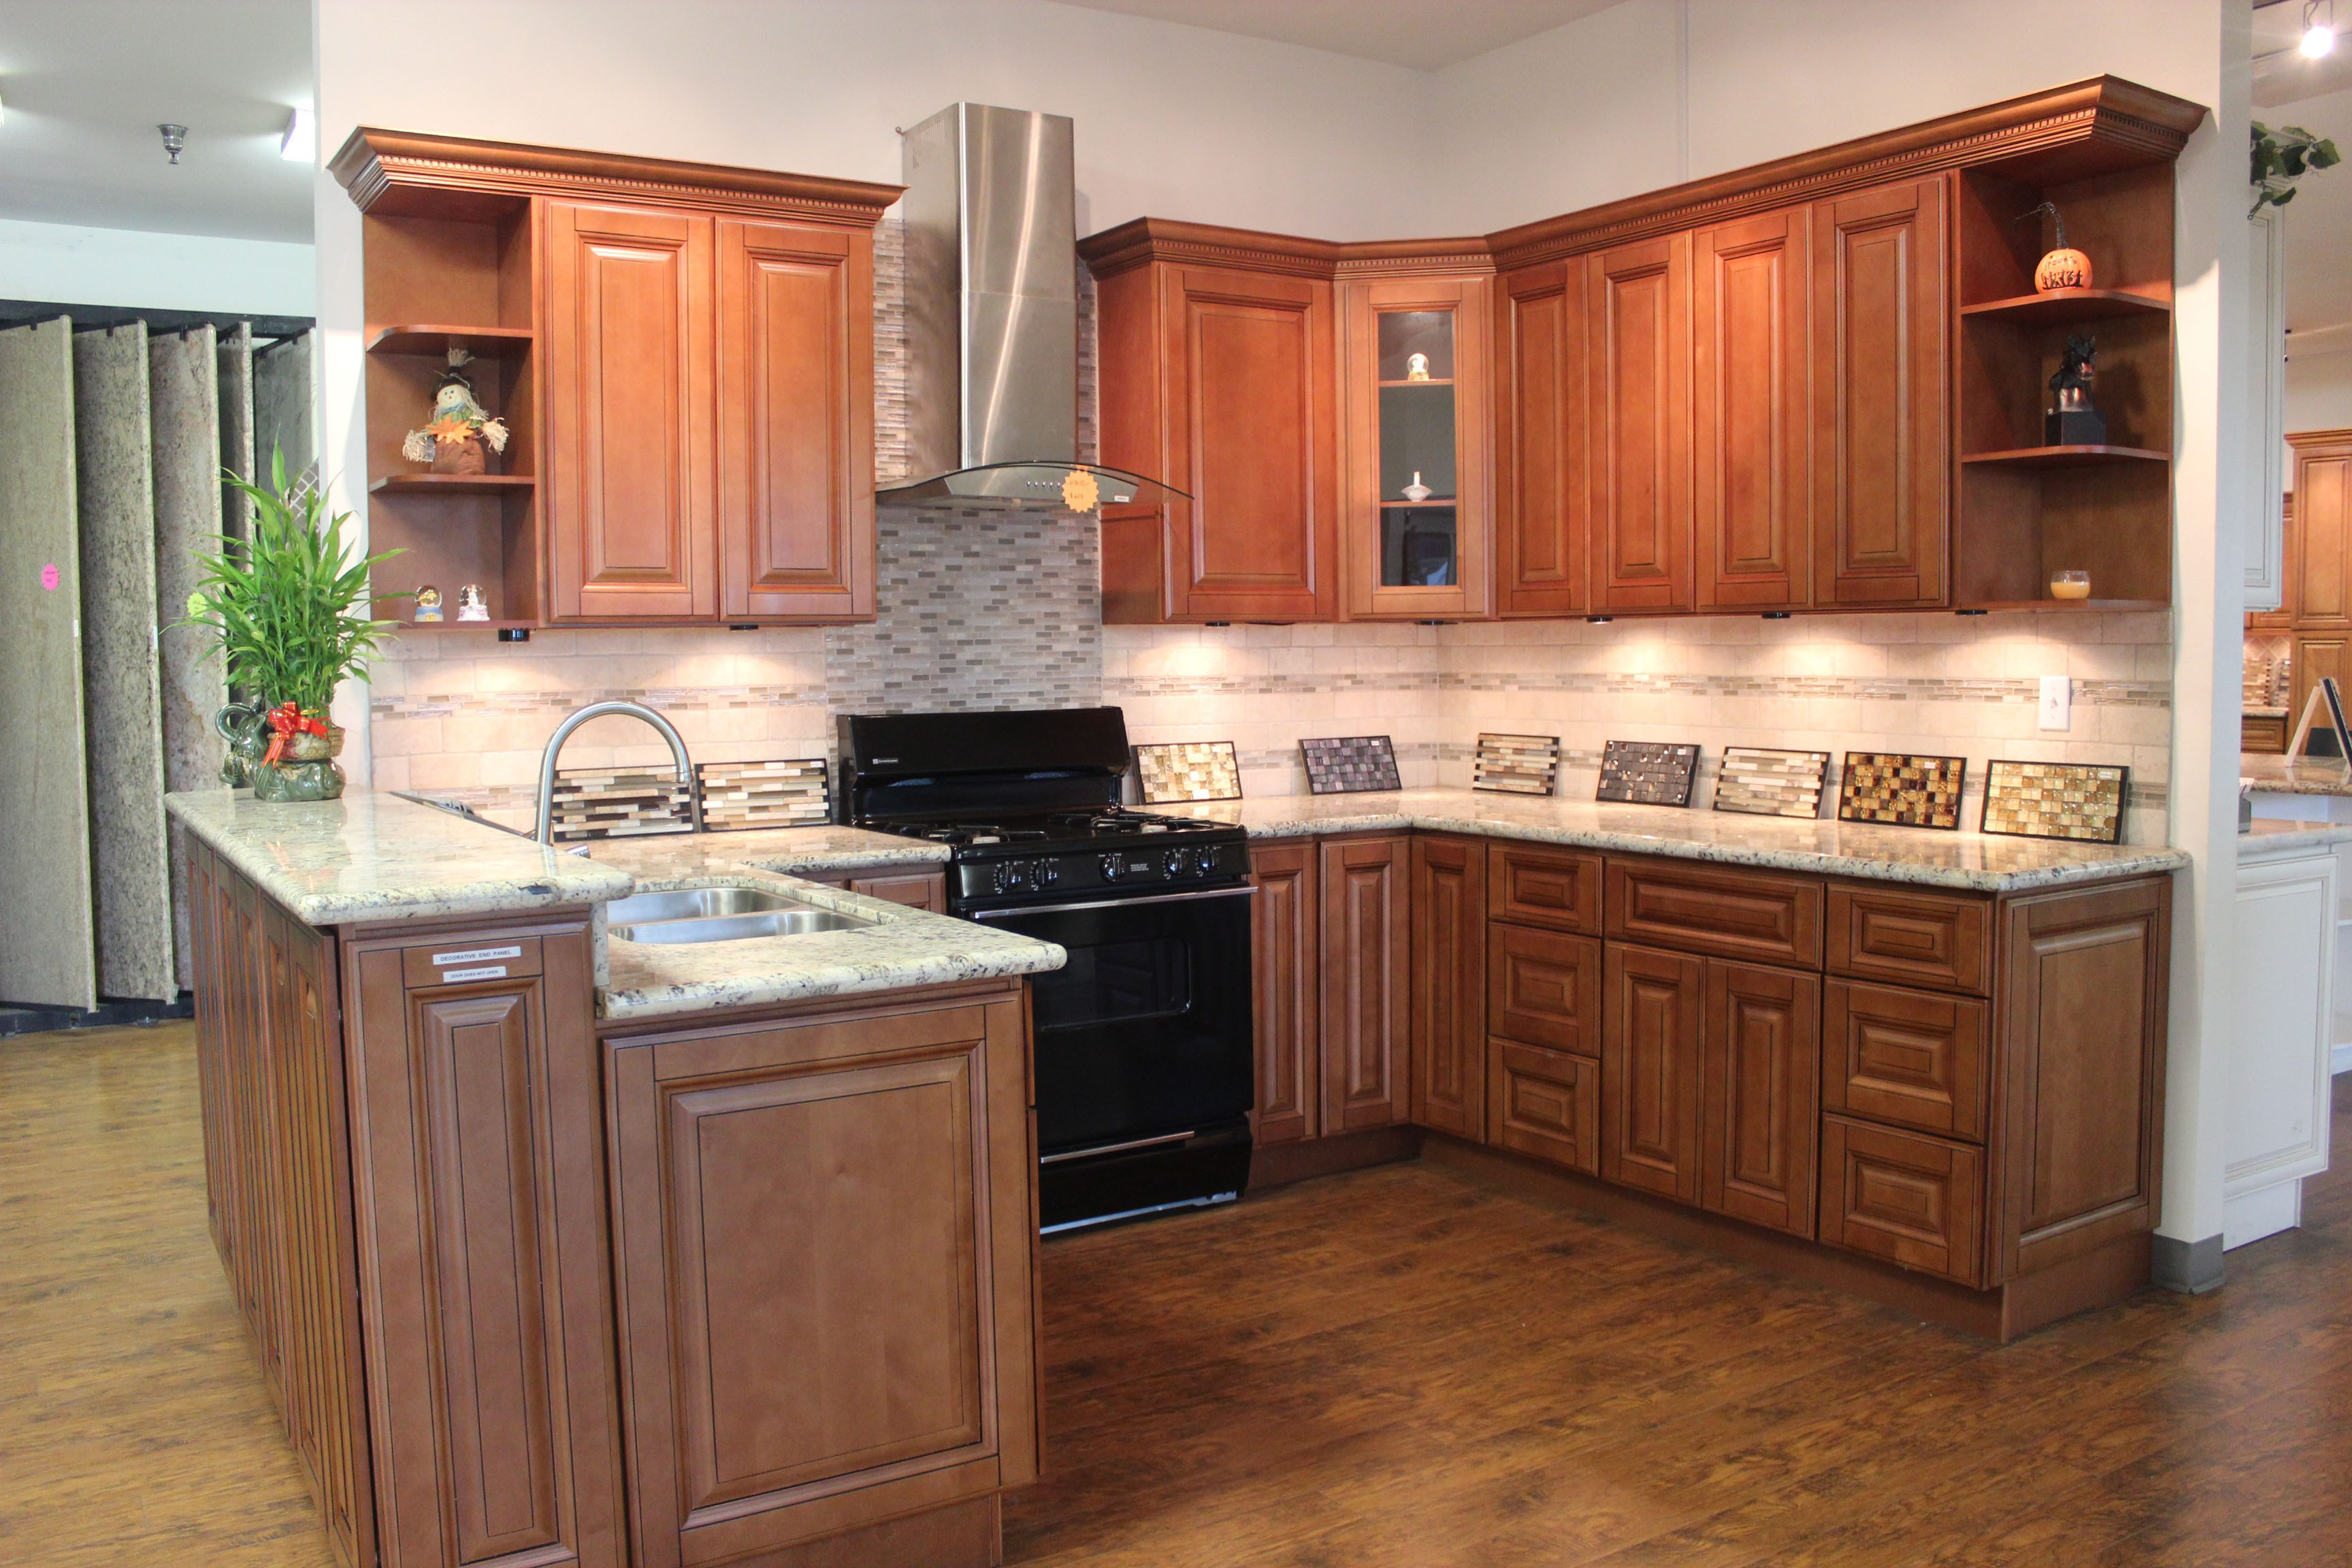 Mocha maple cabinets Kitchen and bath design center lake hopatcong nj